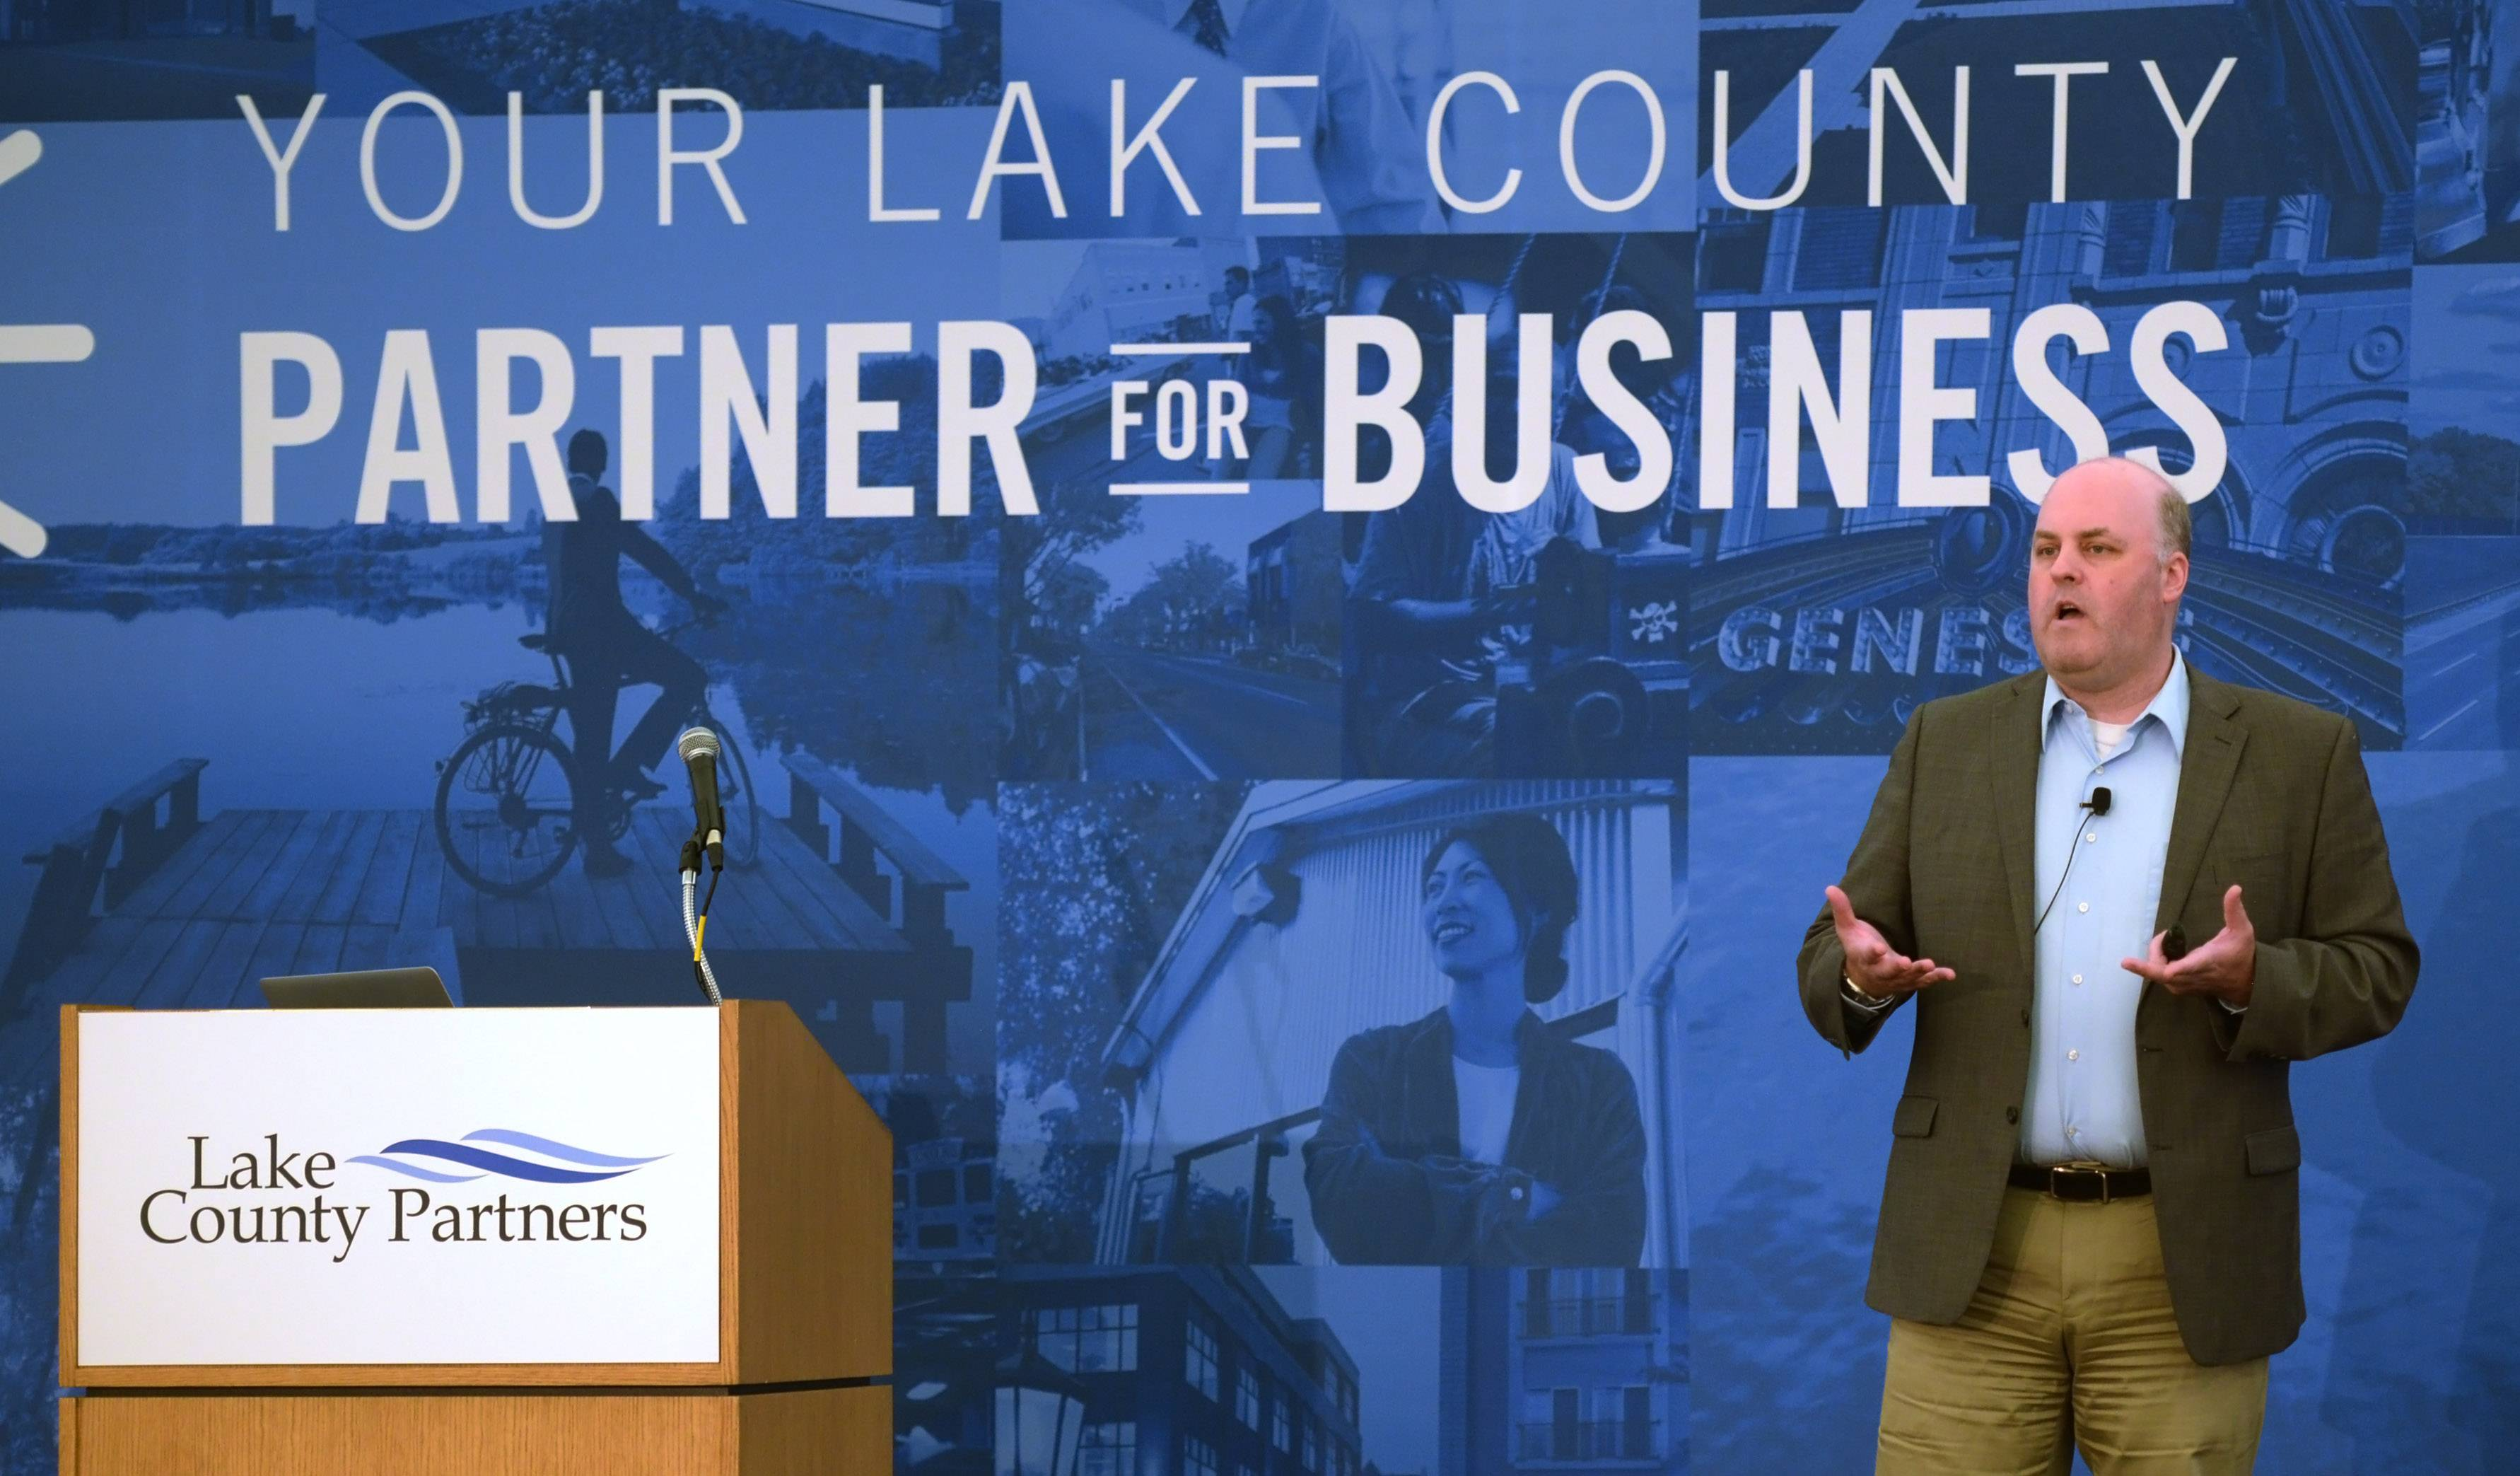 Expert: Grants, tax breaks could lure millennials to Lake County